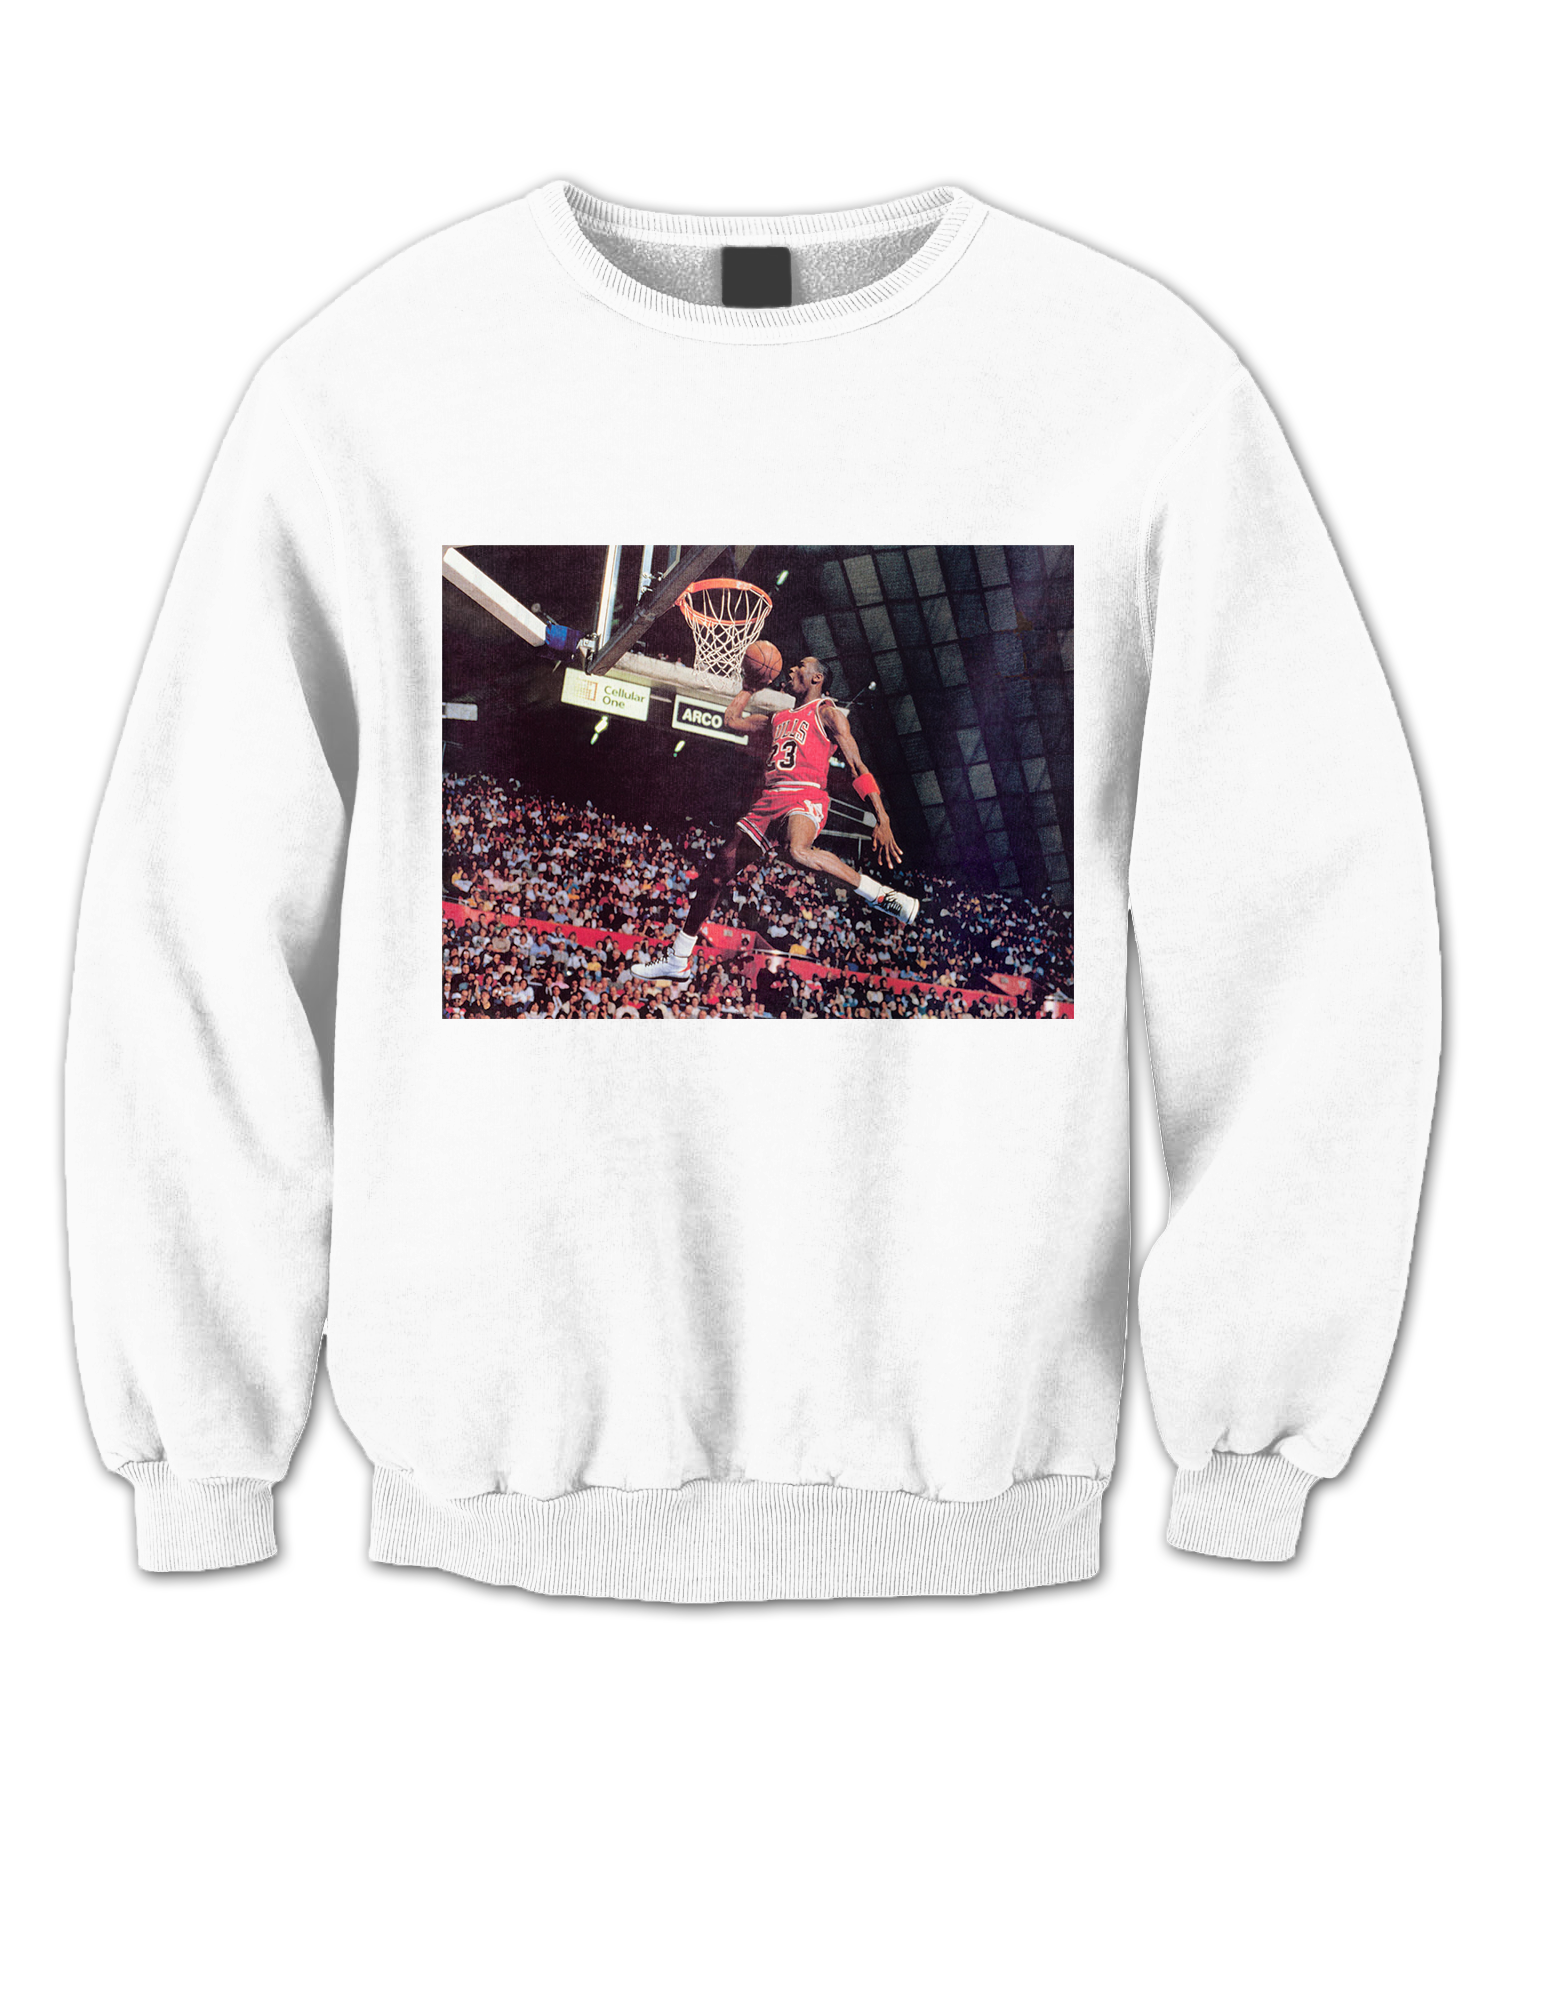 MICHAEL JORDAN SWEATSHIRT DUNK BASKETBALL SHIRTS NBA CELEBRITY T ...